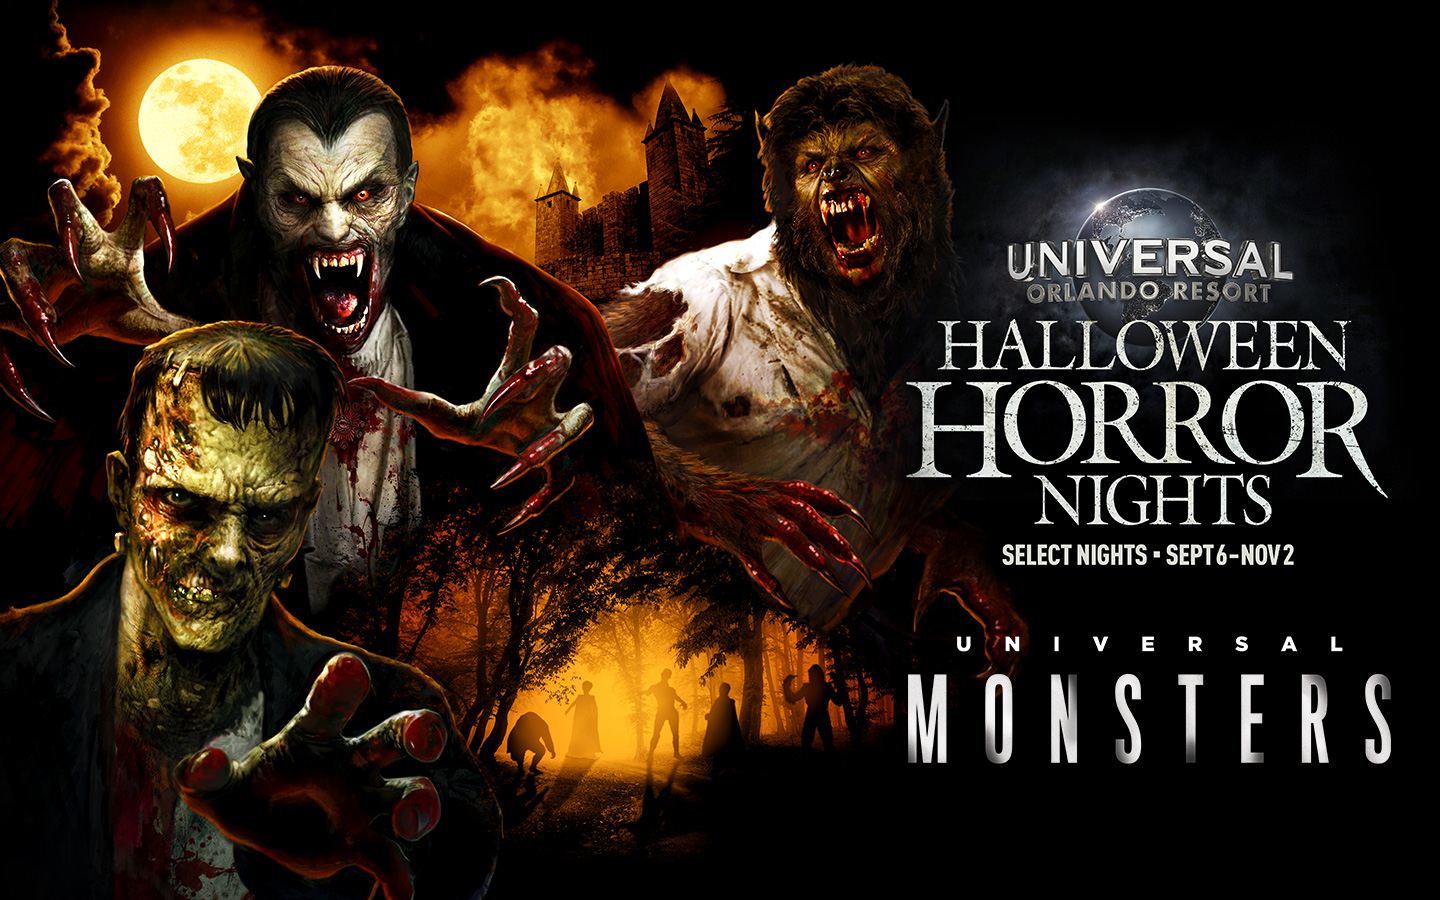 Universal Monsters announced for Halloween Horror Nights 2019